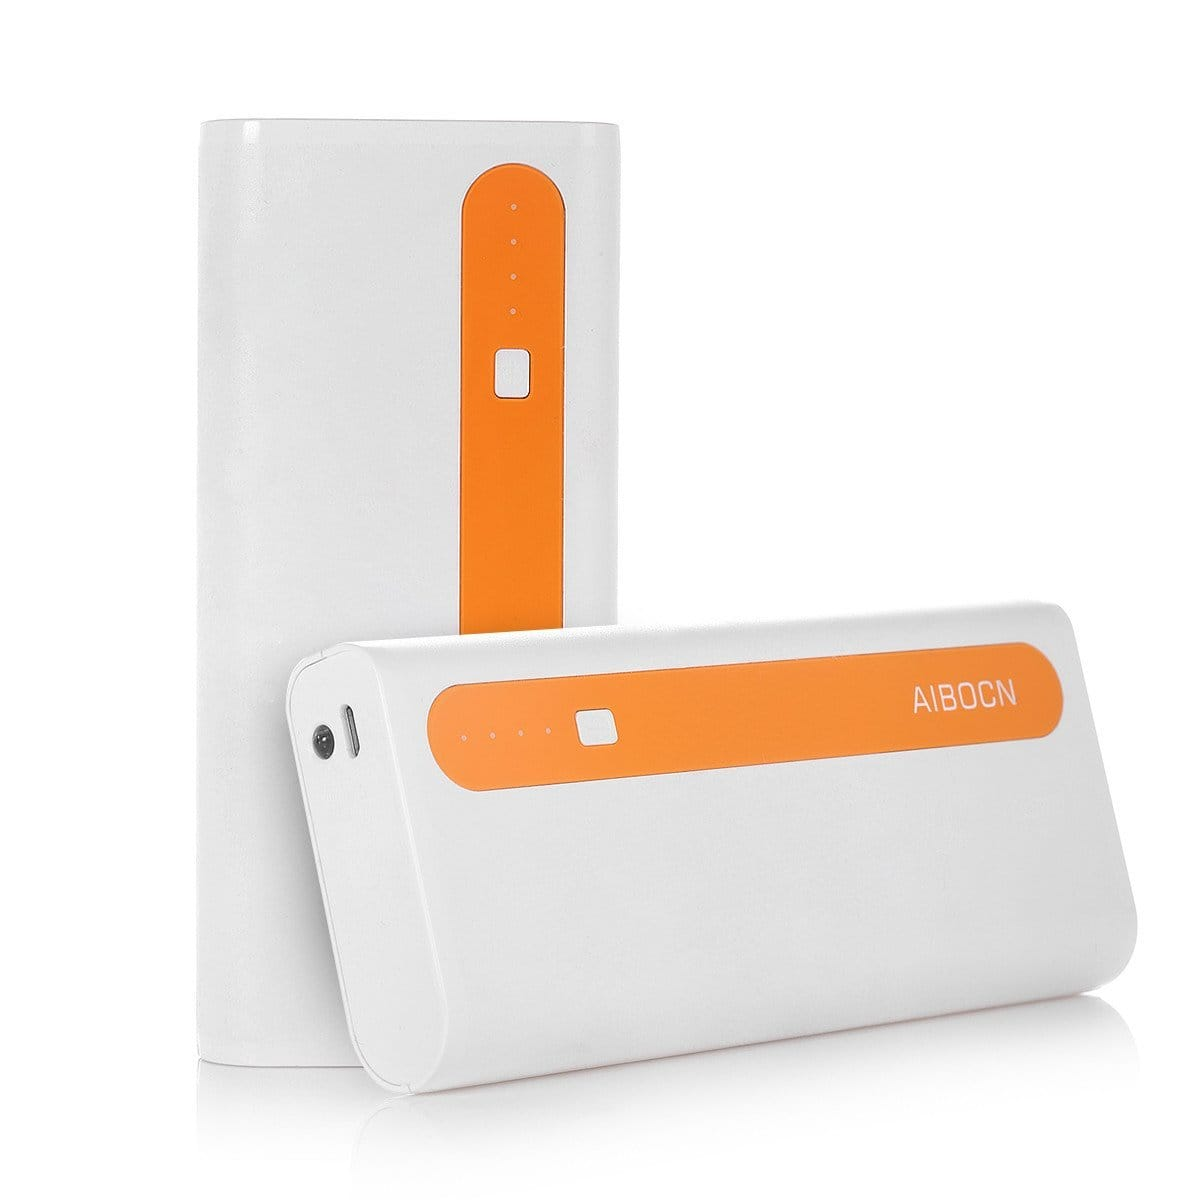 External Battery chargers: $10.99 shipped for both an Aibocn 10,000mAh + 3350mAh battery packs